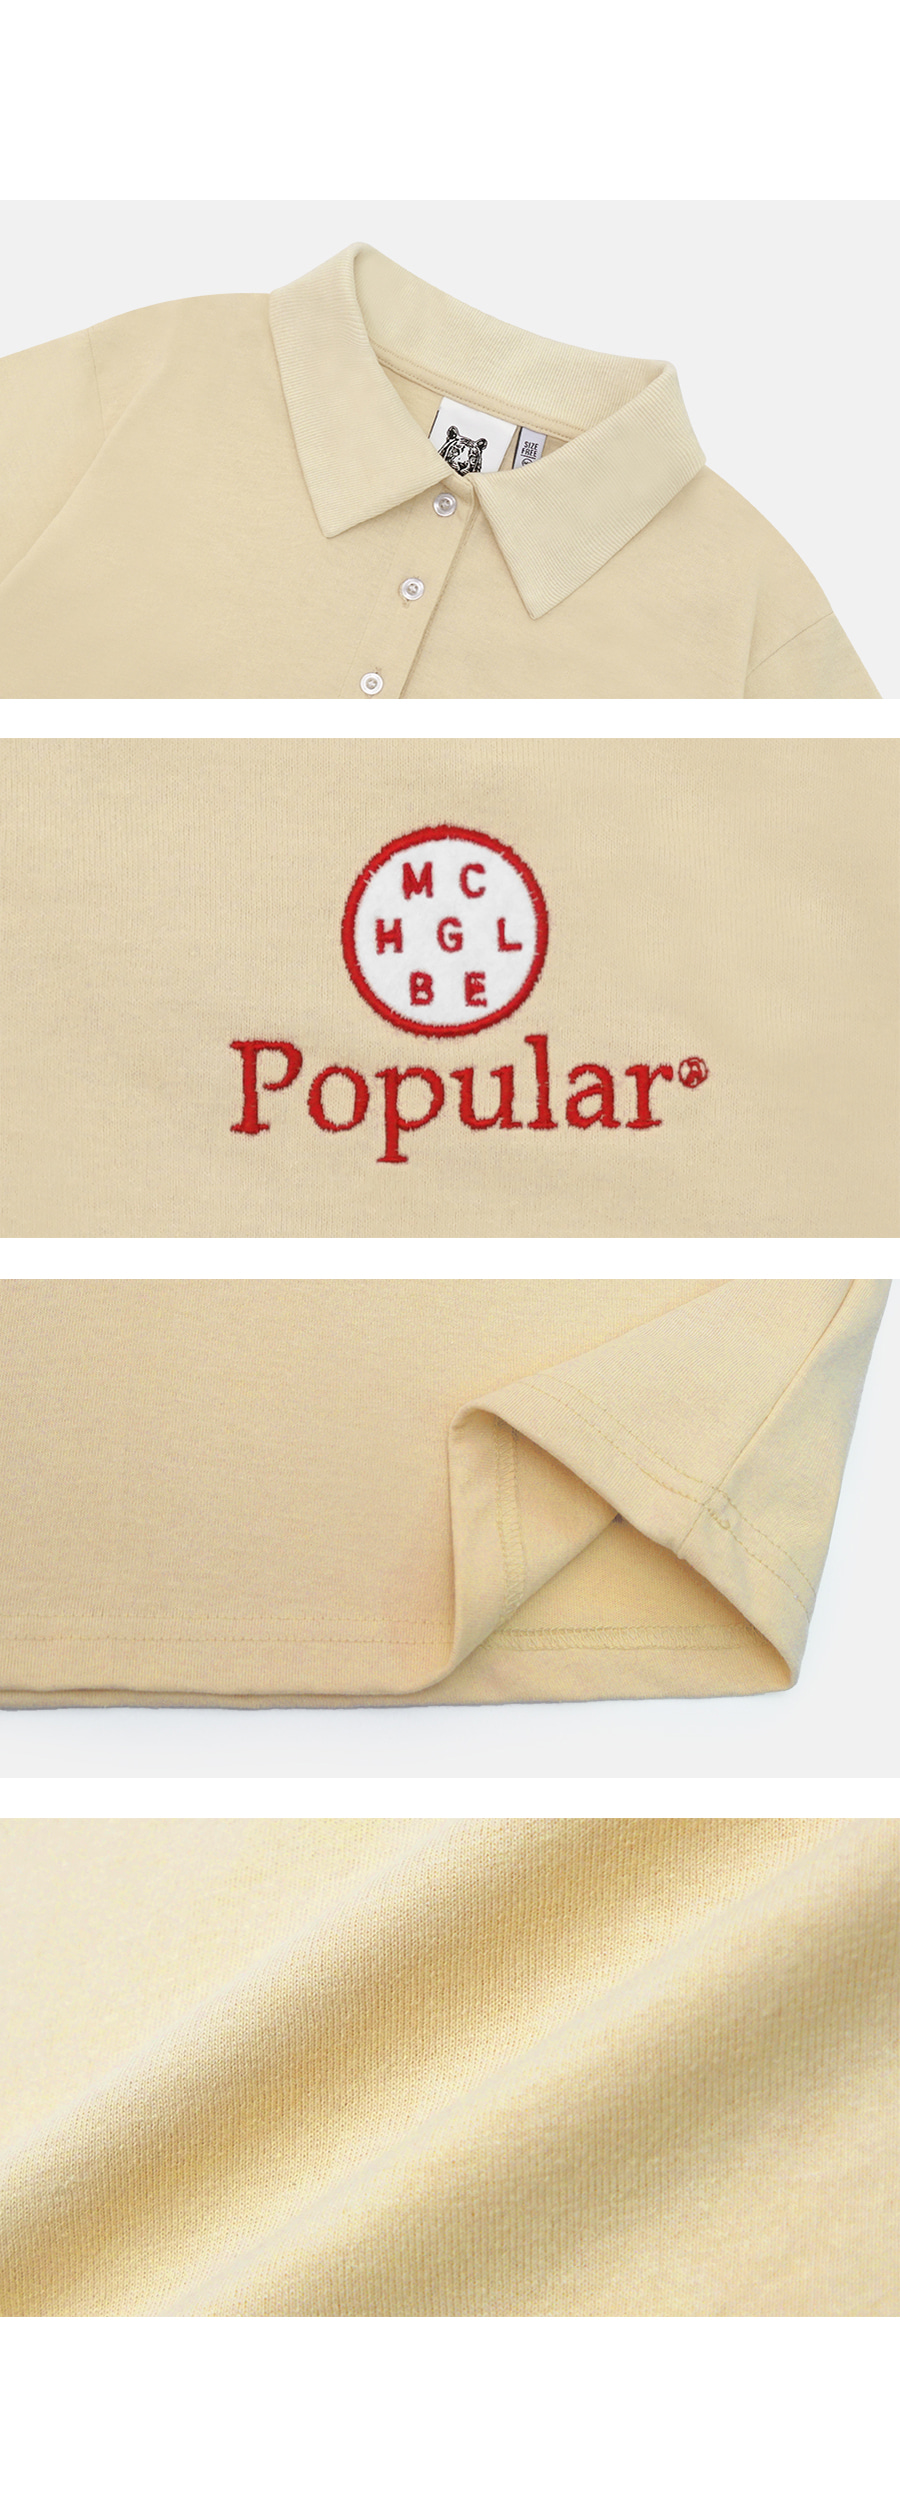 매치글로브(MATCHGLOBE) MG9S POPULAR TEE (BEIGE)